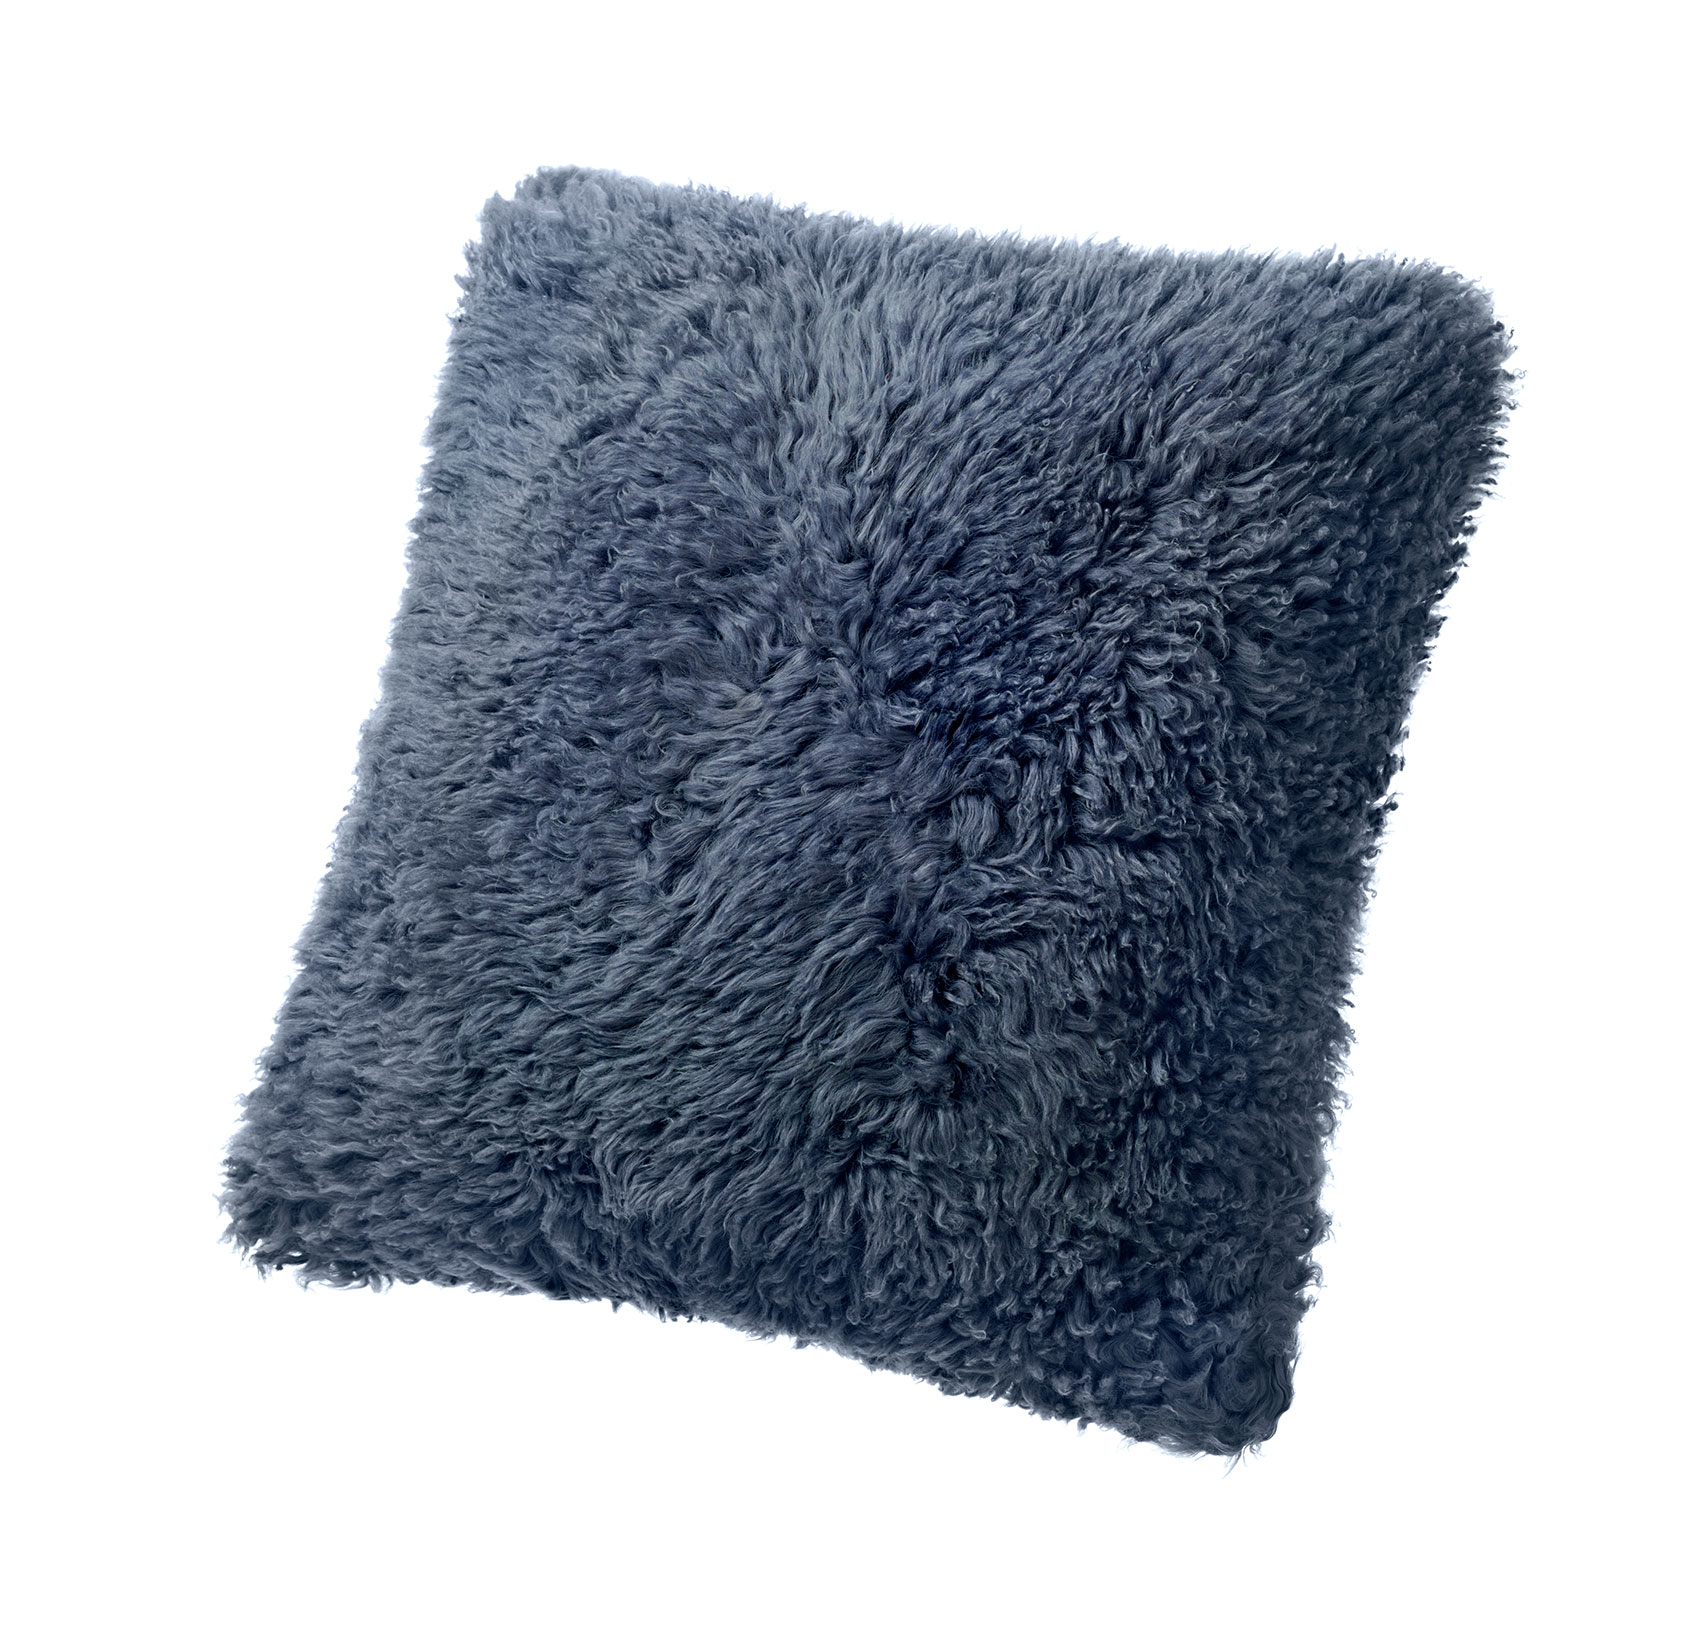 Sheepskin Pillow Charcoal